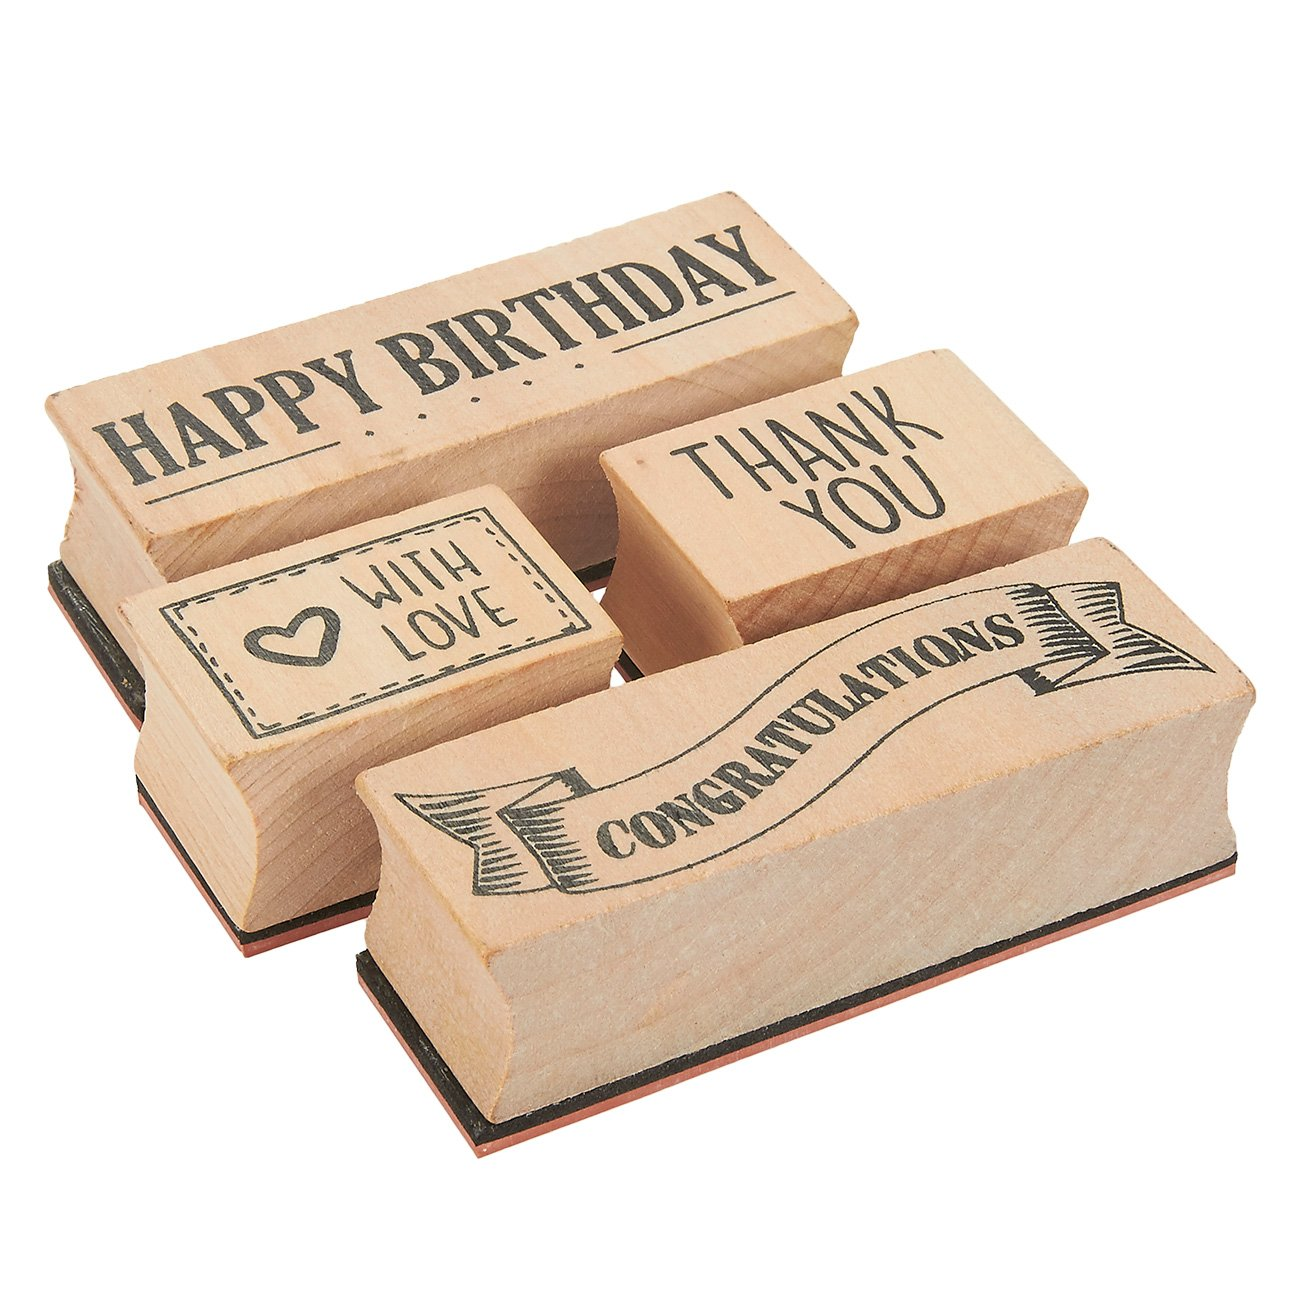 4-Piece Card Making Stamps Set - Wood Mounted Rubber Stamps for Card Making, DIY Crafts, Scrapbooking - Happy Birthday, Thank You, Congratulations, with Love Juvale 4336992280